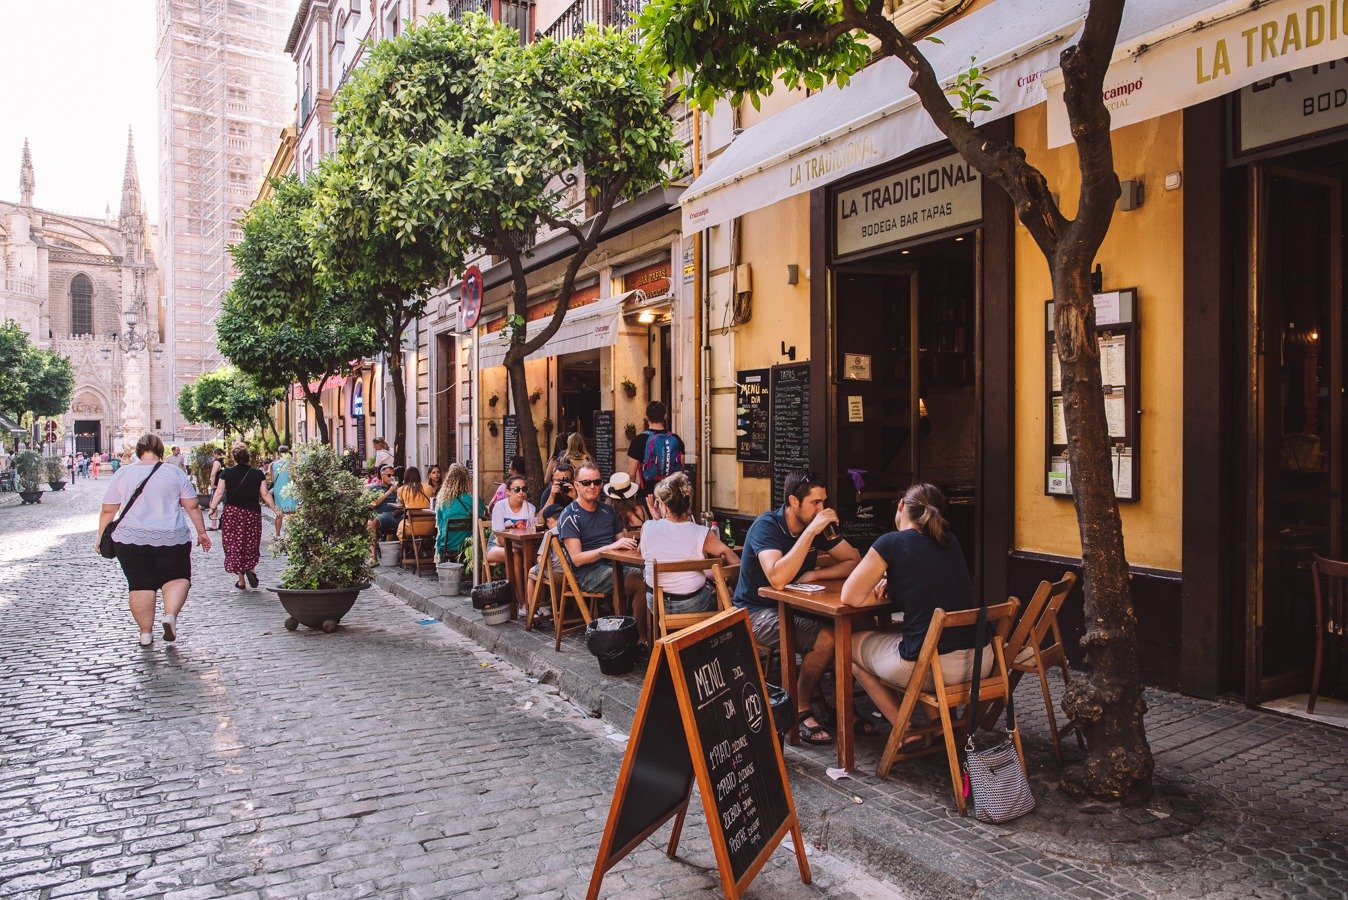 Where To Eat In Seville. The Best tapas bars in Seville